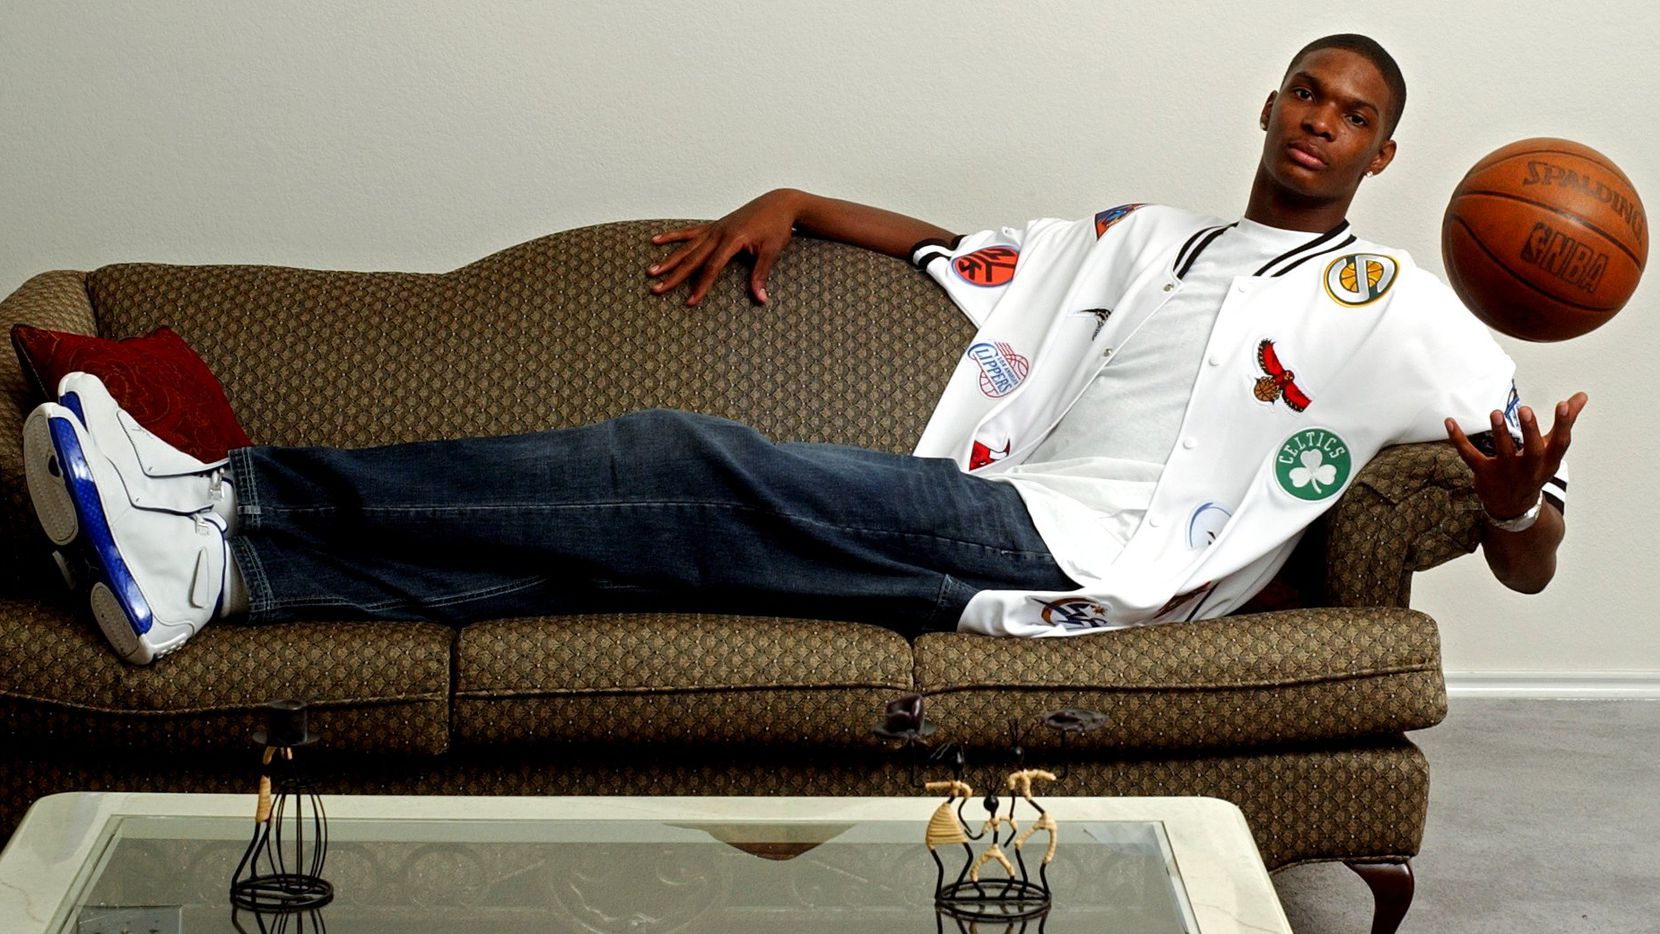 Chris Bosh as an NBA draft prospect at his home in Lancaster on Sunday, June 22, 2003. Bosh was a former Lincoln High School basketball star before his standout NBA career.